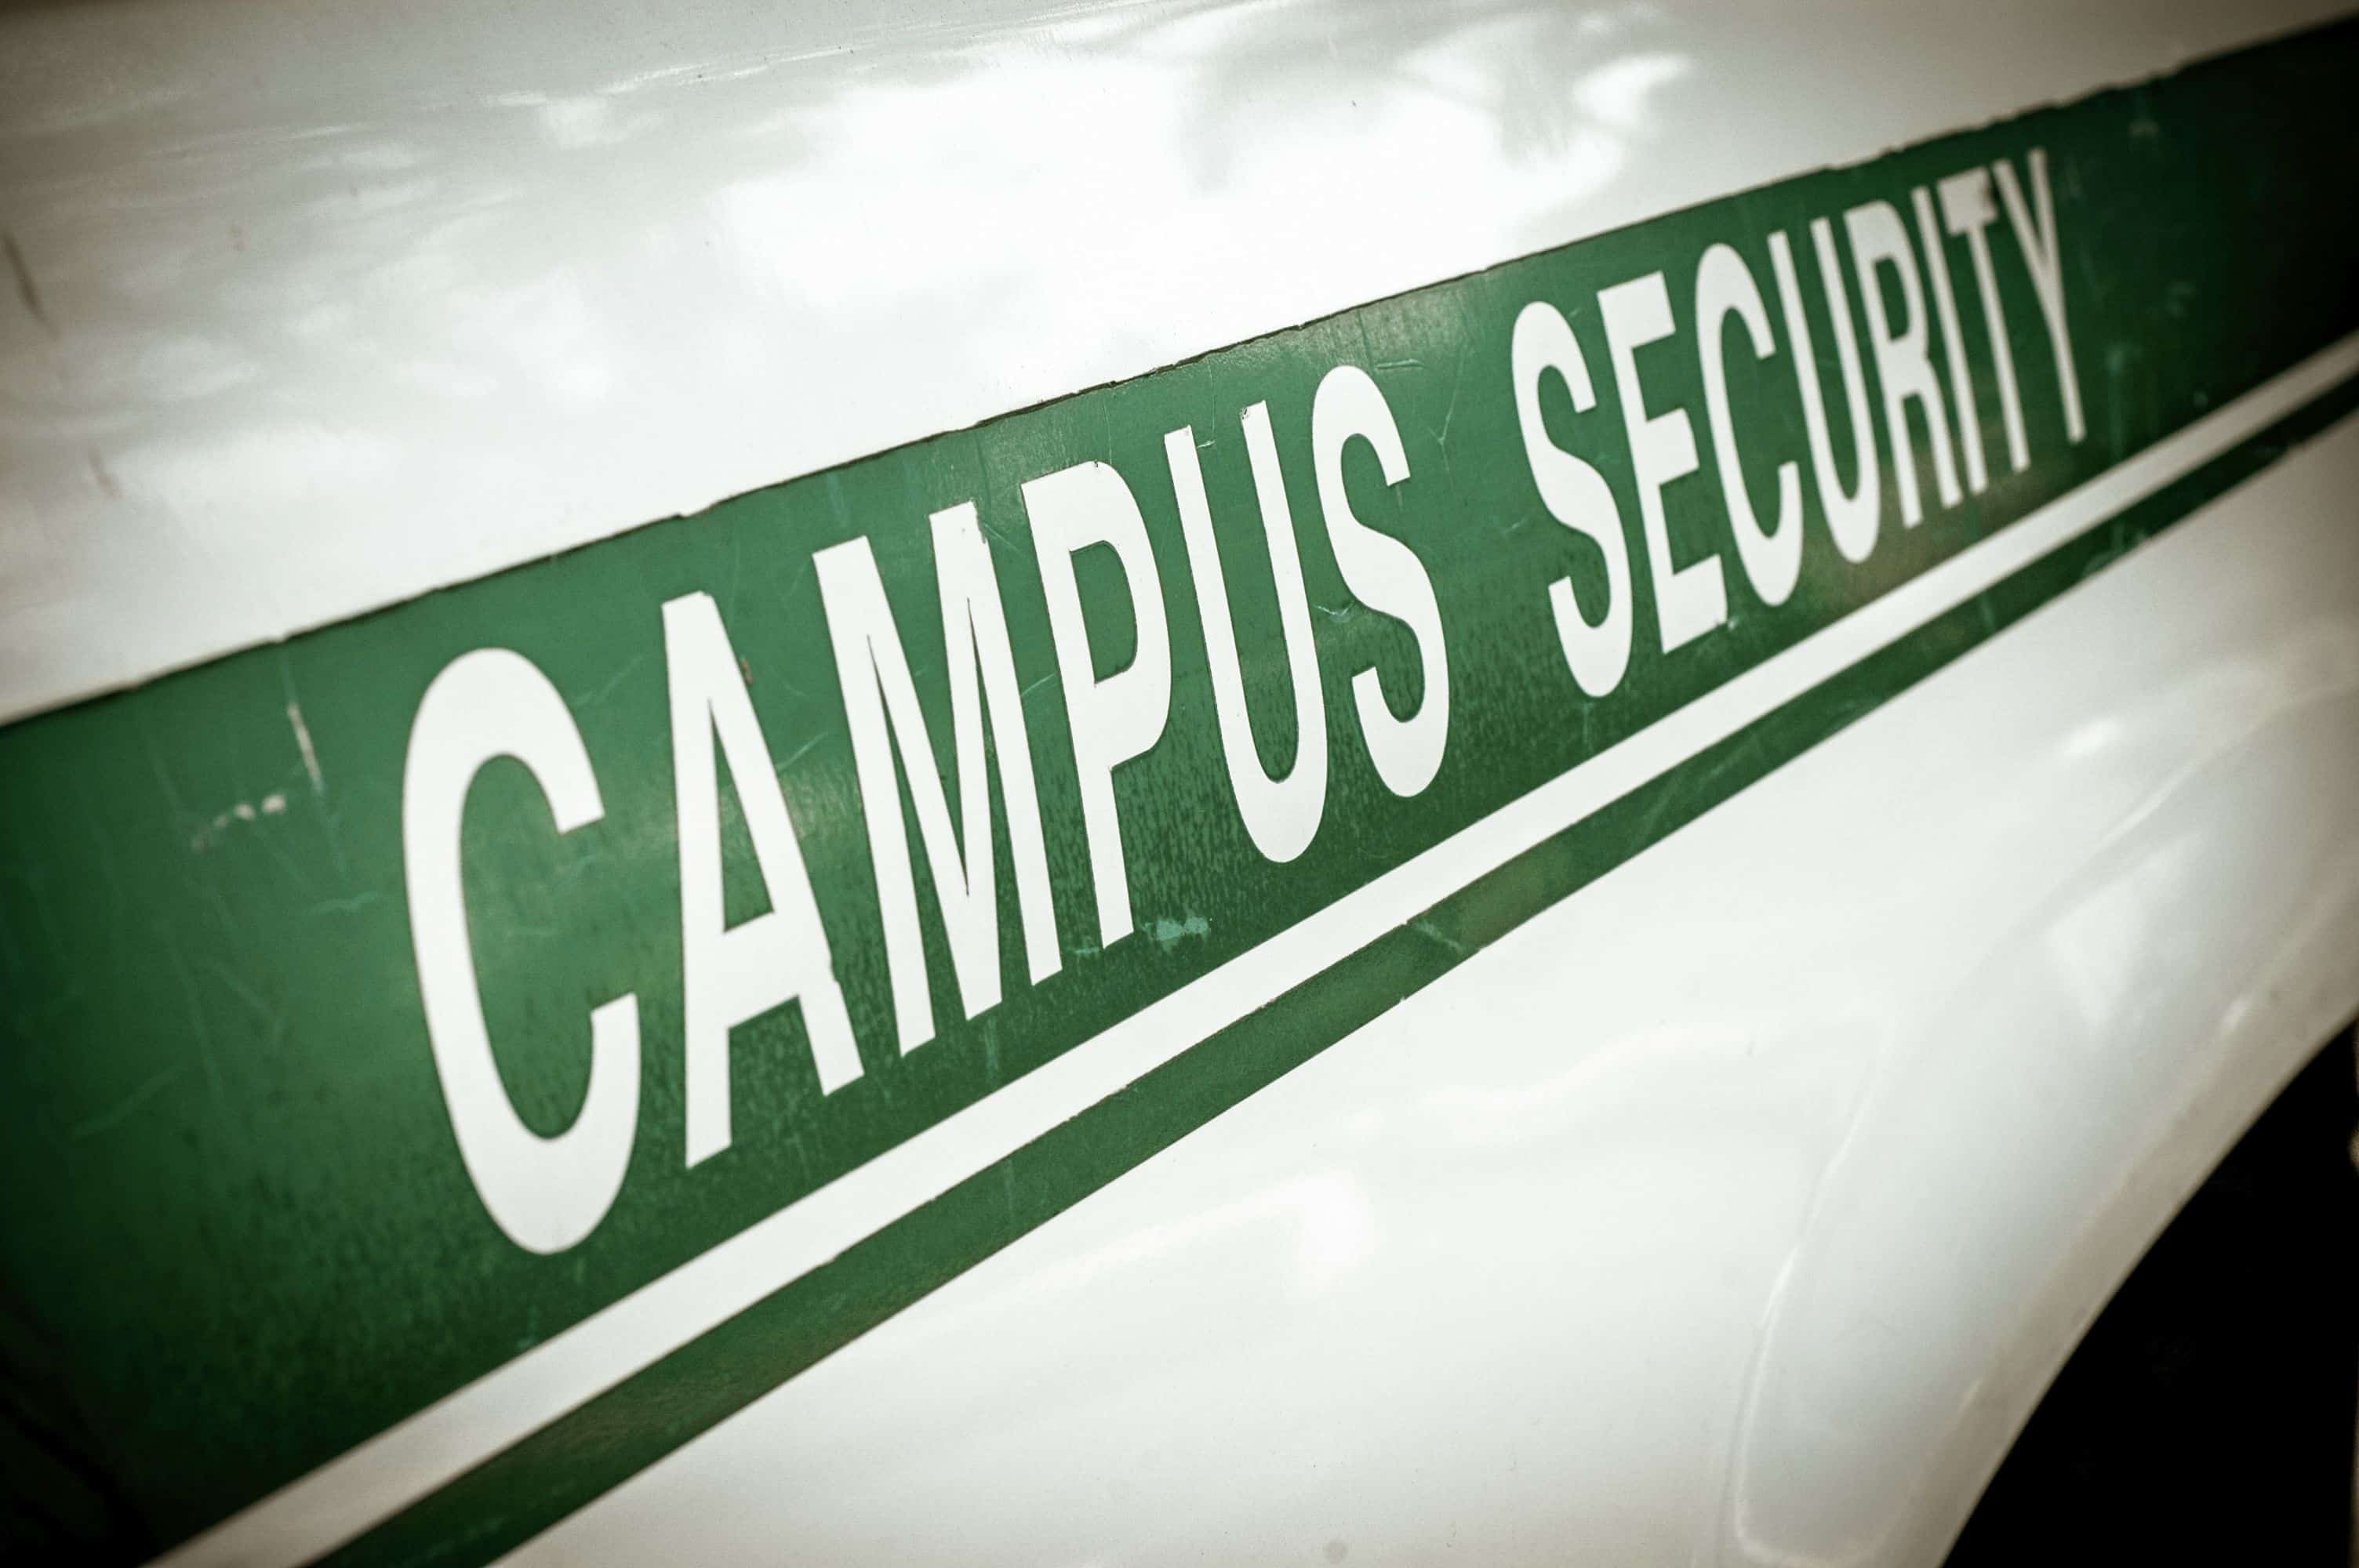 Campus Security Vehicle